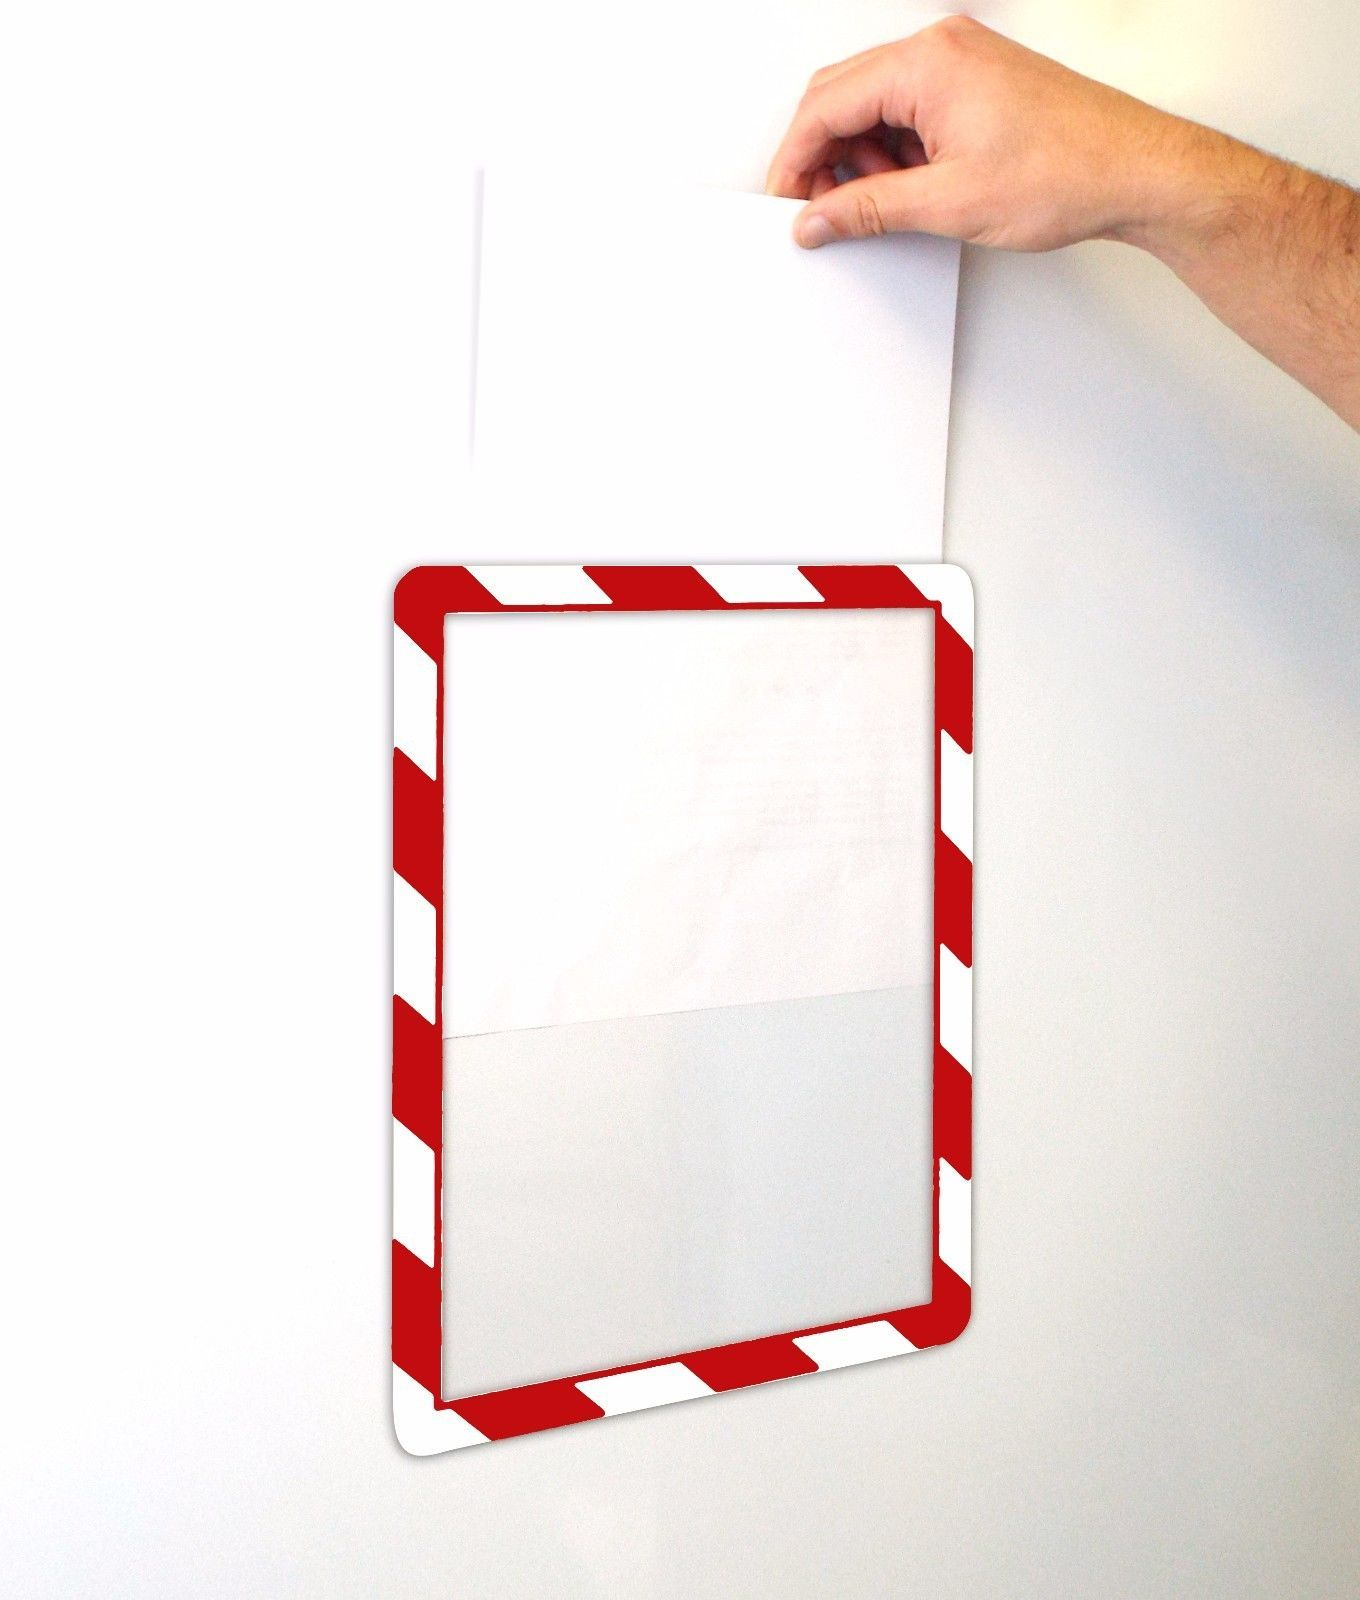 A4 Hazard Warning Striped Picture Frame 12 x 8 Photo Document Display Holders